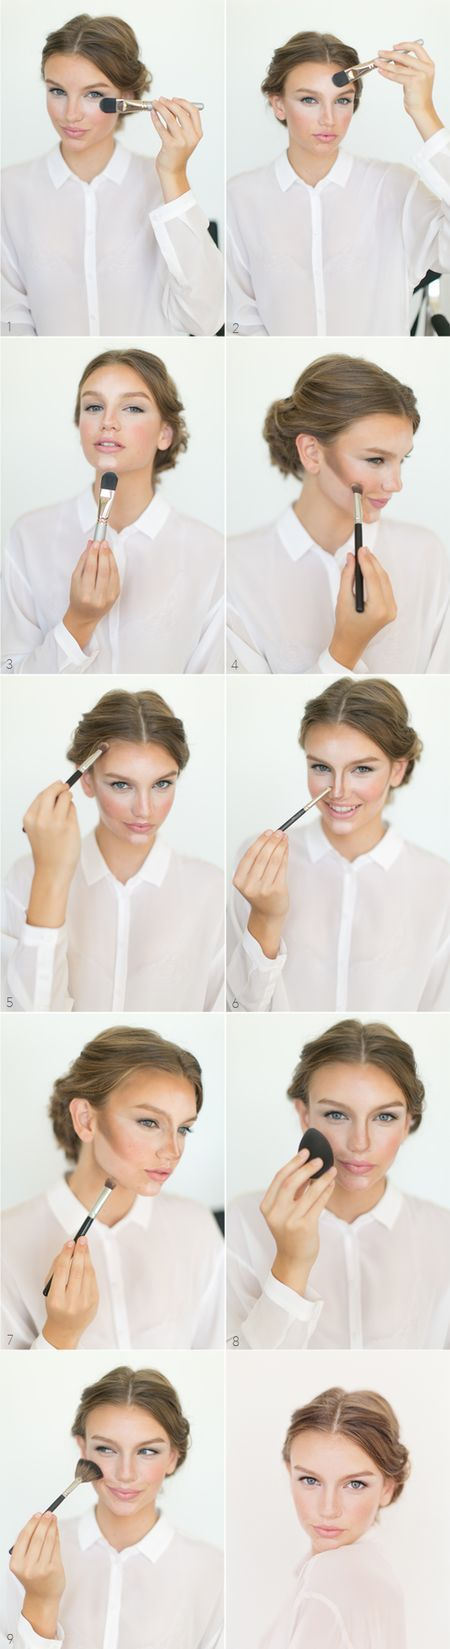 Contouring & Highlight Tutorial #makeup #beauty #countouring  - Great quick step by step reminder.